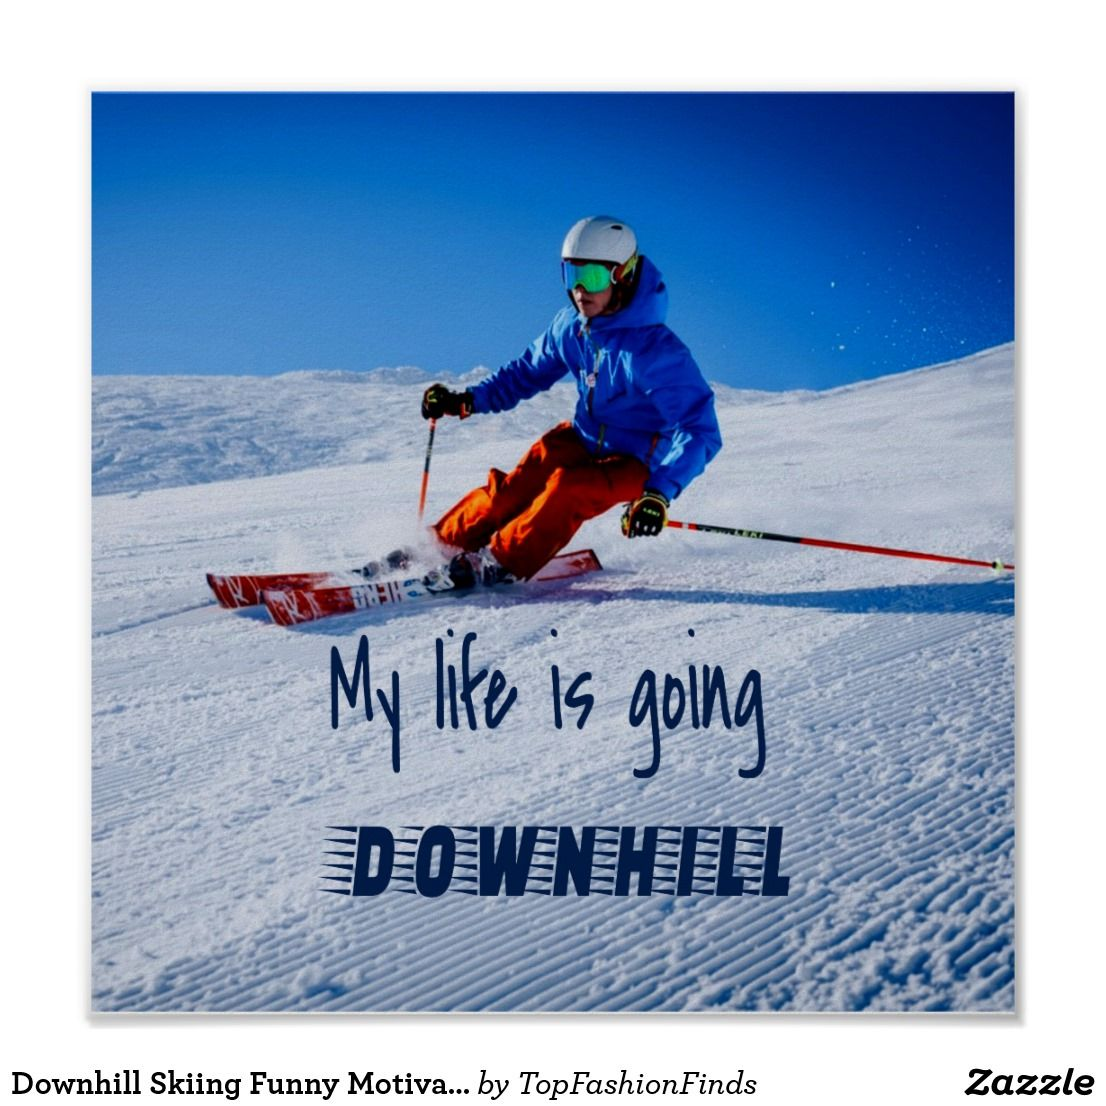 Downhill Skiing Funny Motivational Snow Ski Poster Zazzle Com In 2020 Downhill Skiing Snow Skiing Ski Posters